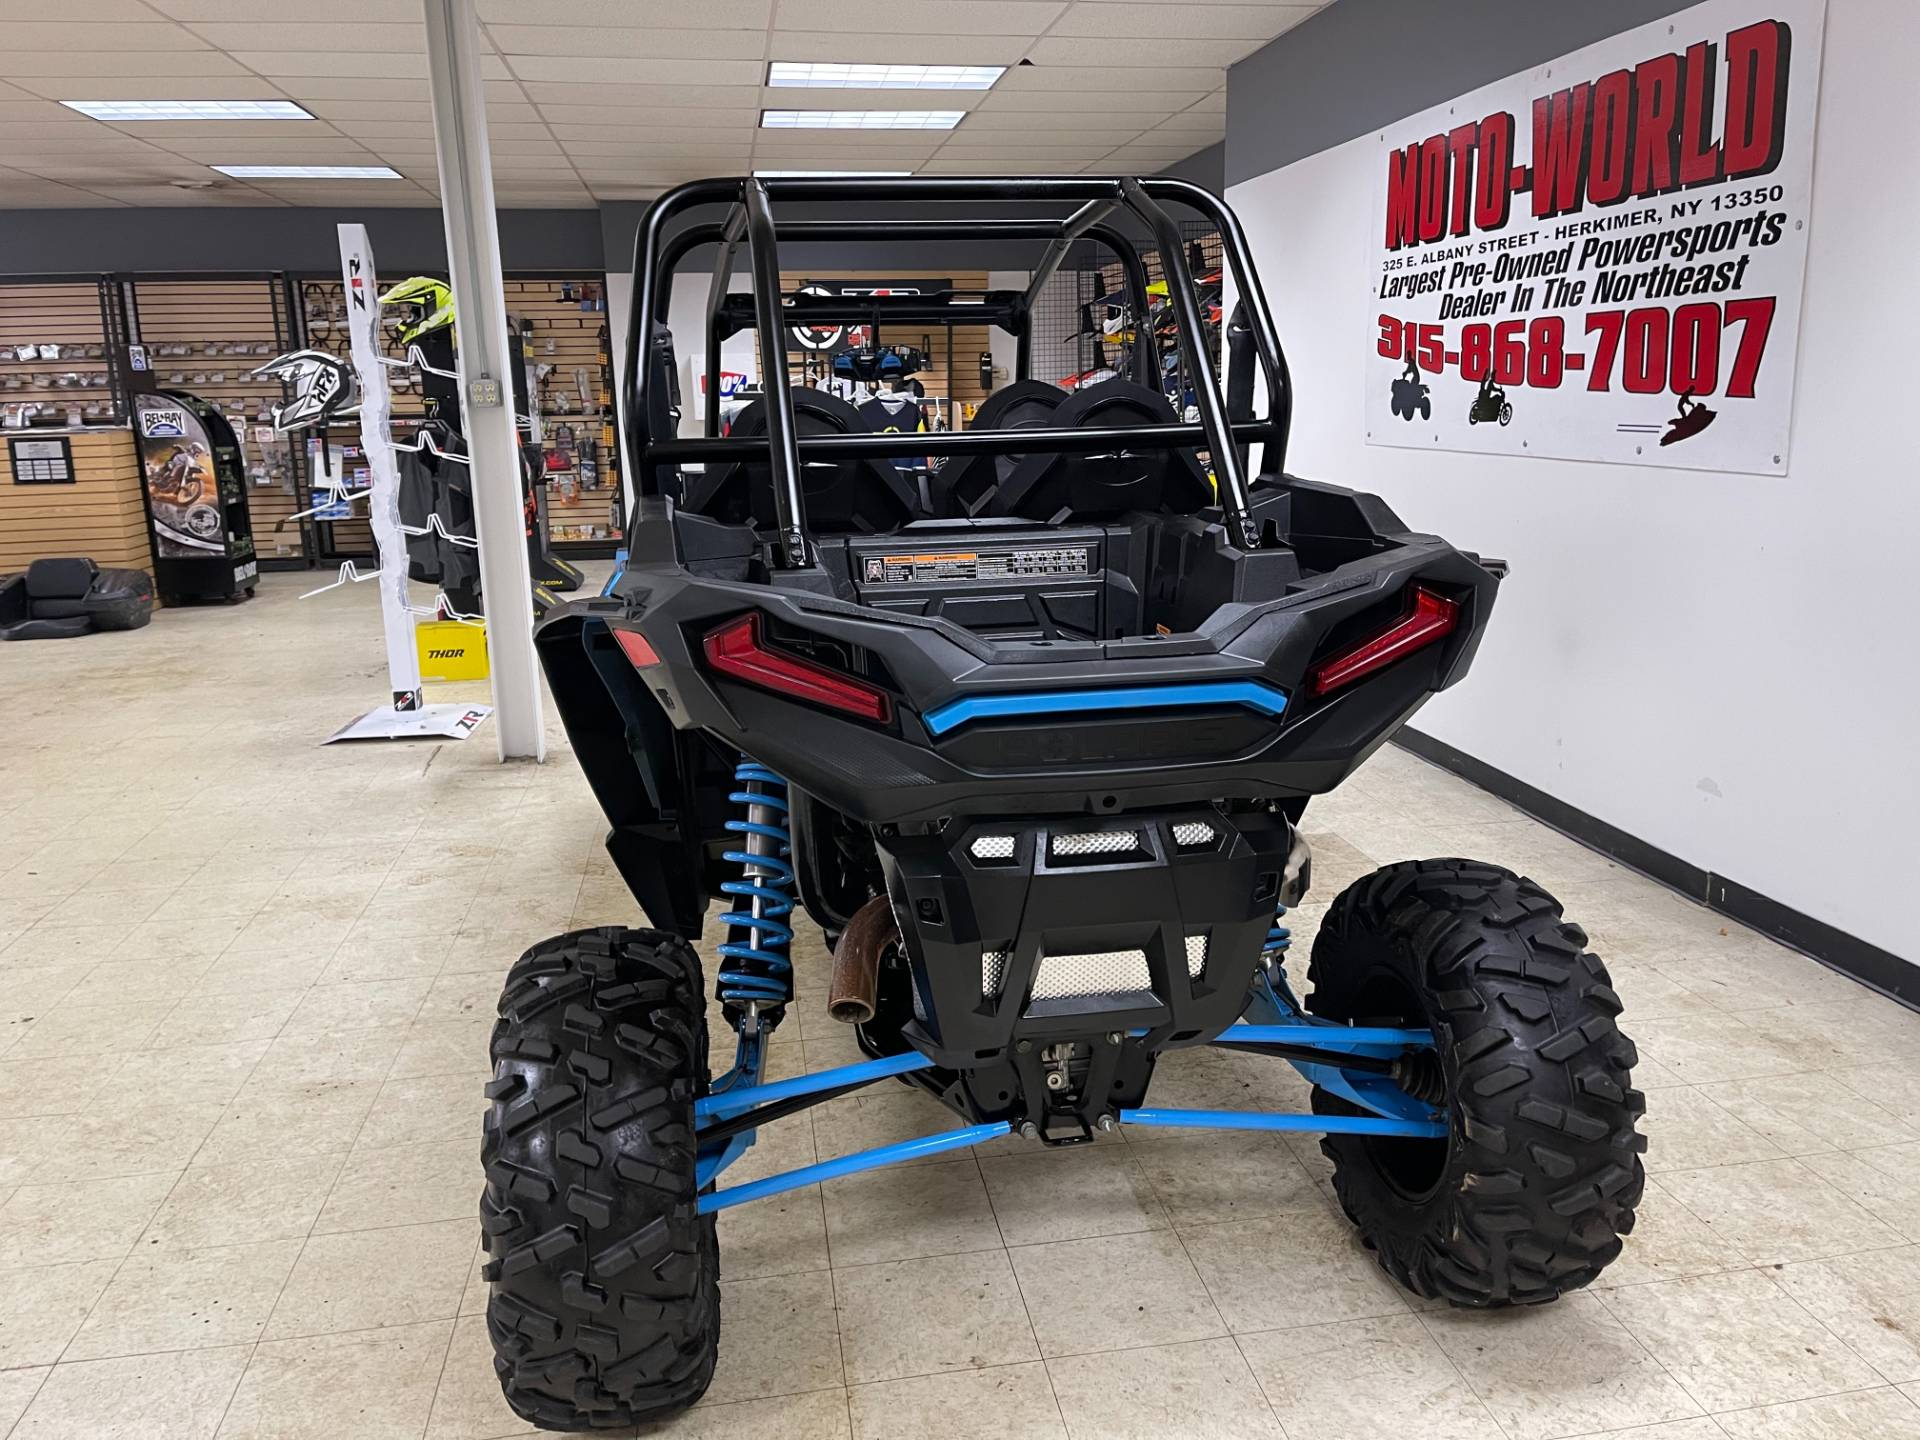 2020 Polaris RZR XP 4 1000 in Herkimer, New York - Photo 14